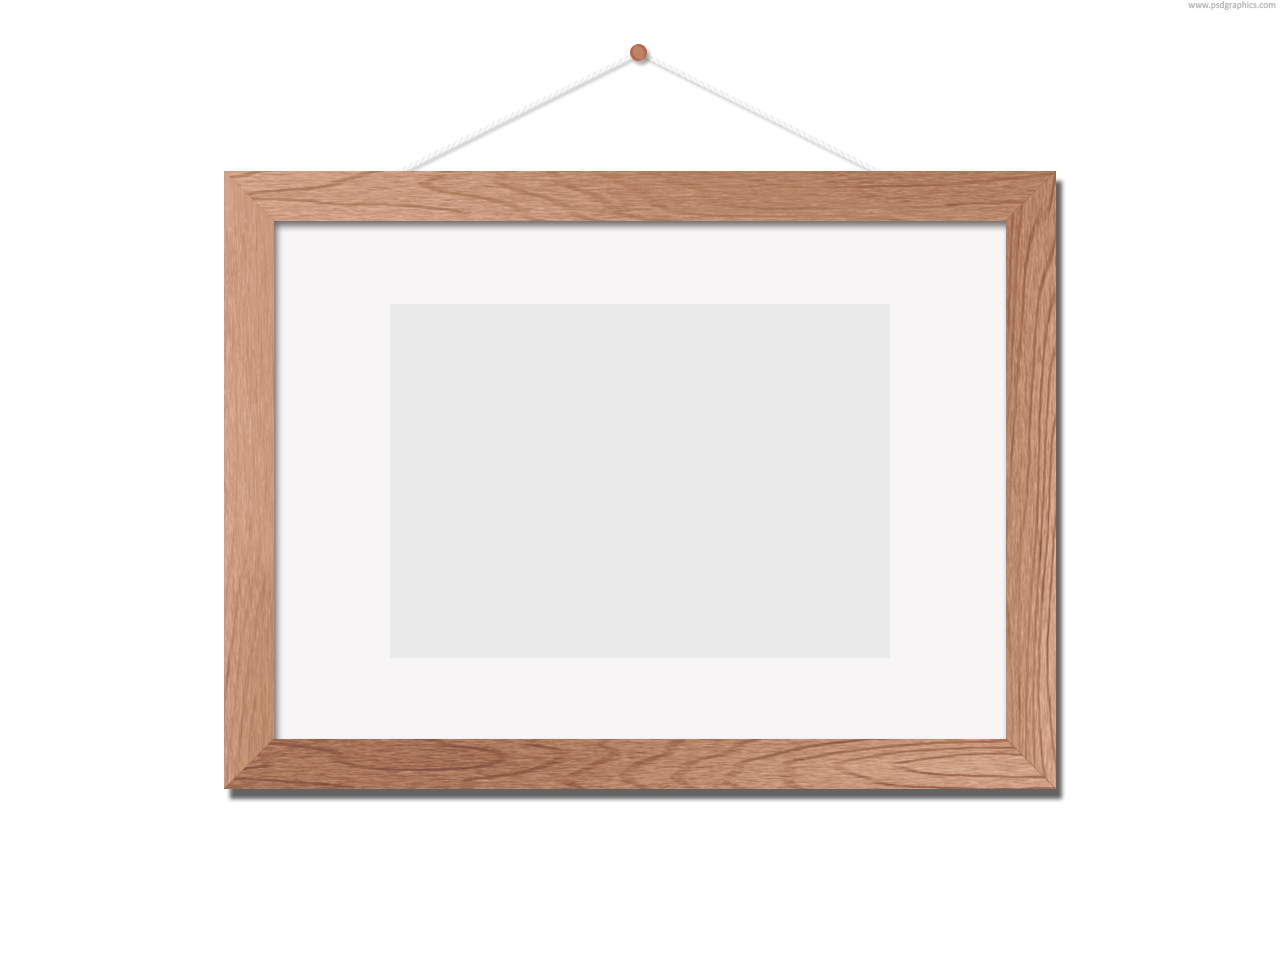 Wood Photo Frames : Wooden photo frame template (PSD)